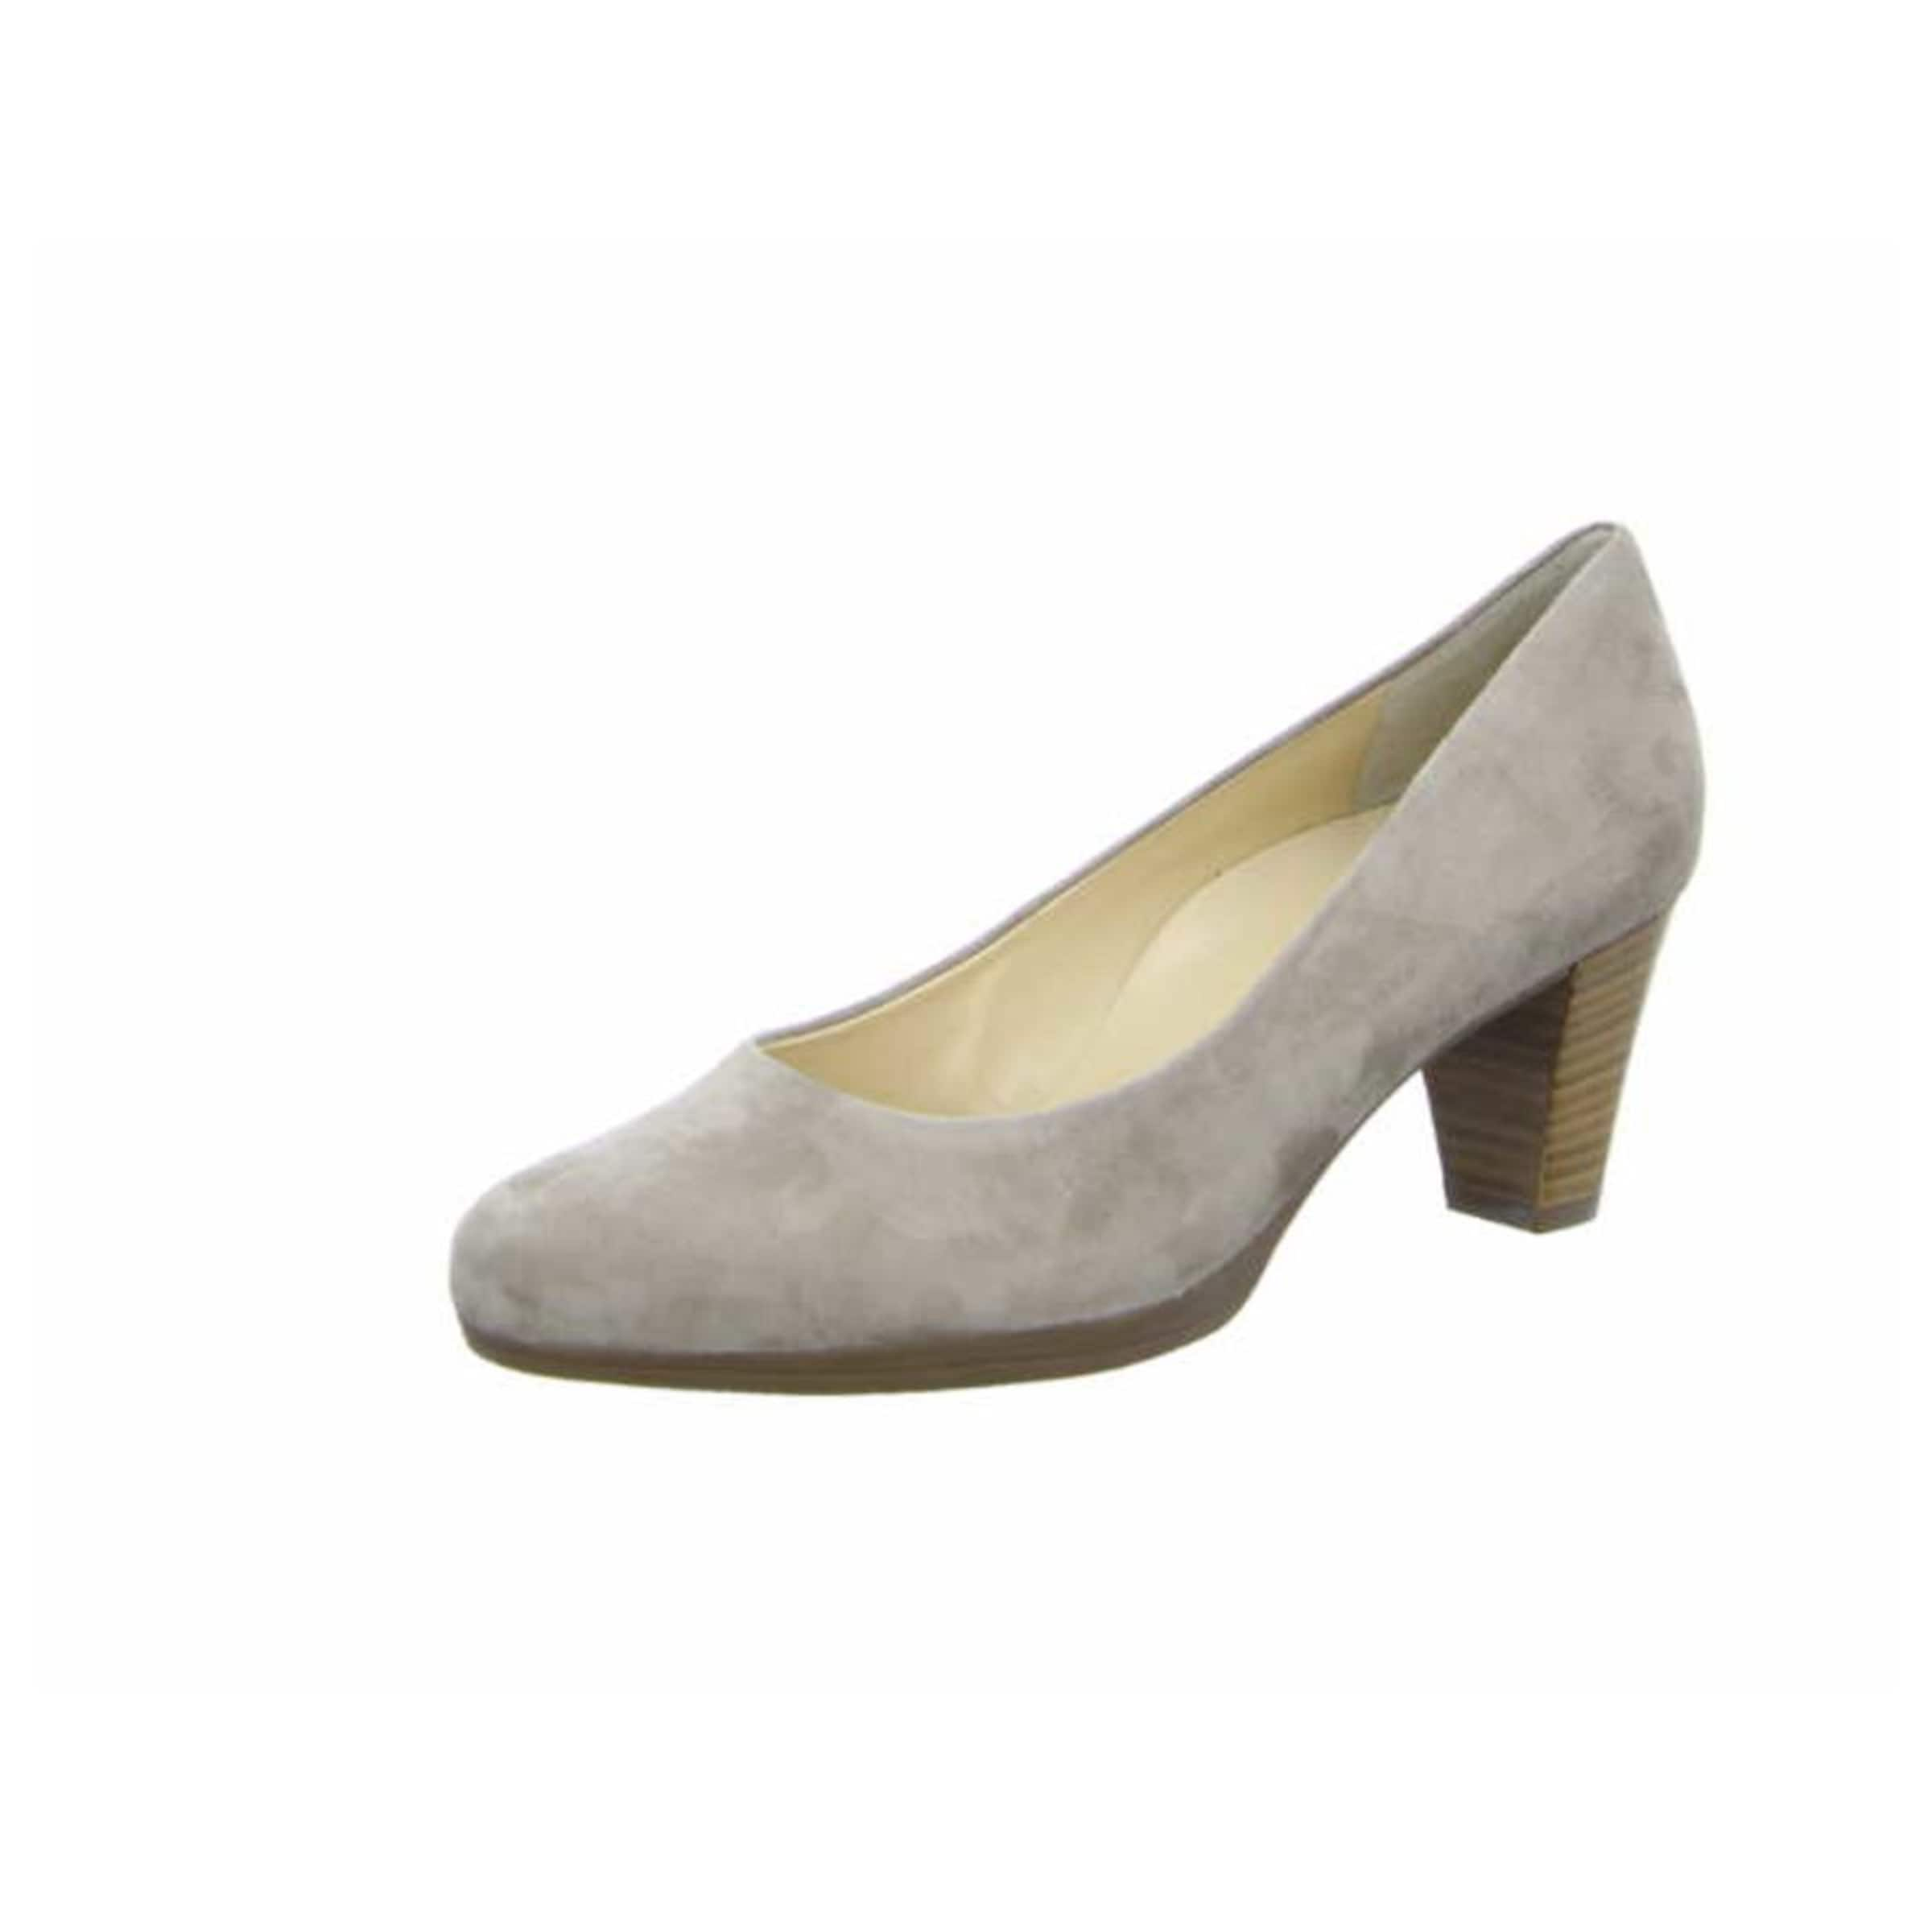 Paul In In Pumps Green Paul Green Paul Taupe In Pumps Green Pumps Taupe Y7fIy6mbgv